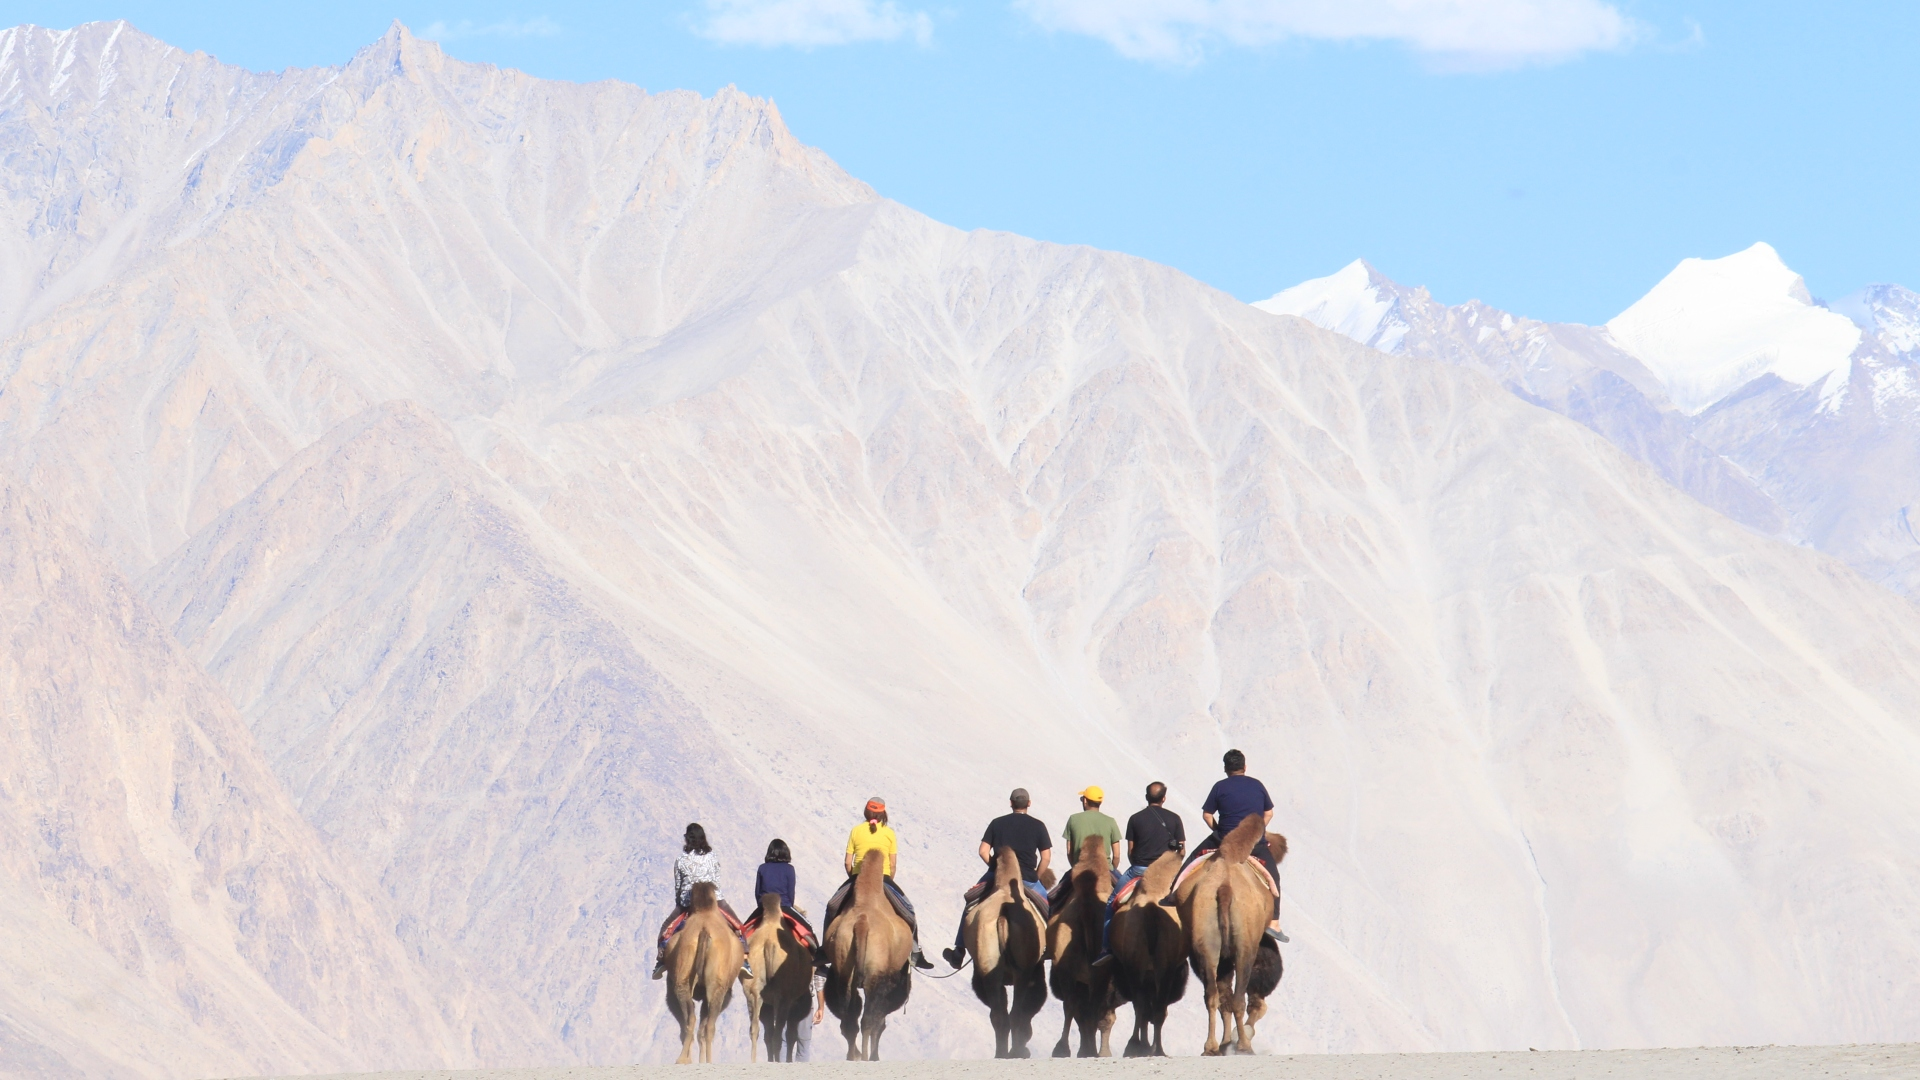 Bactrian camel rides - Famous in Hunder.